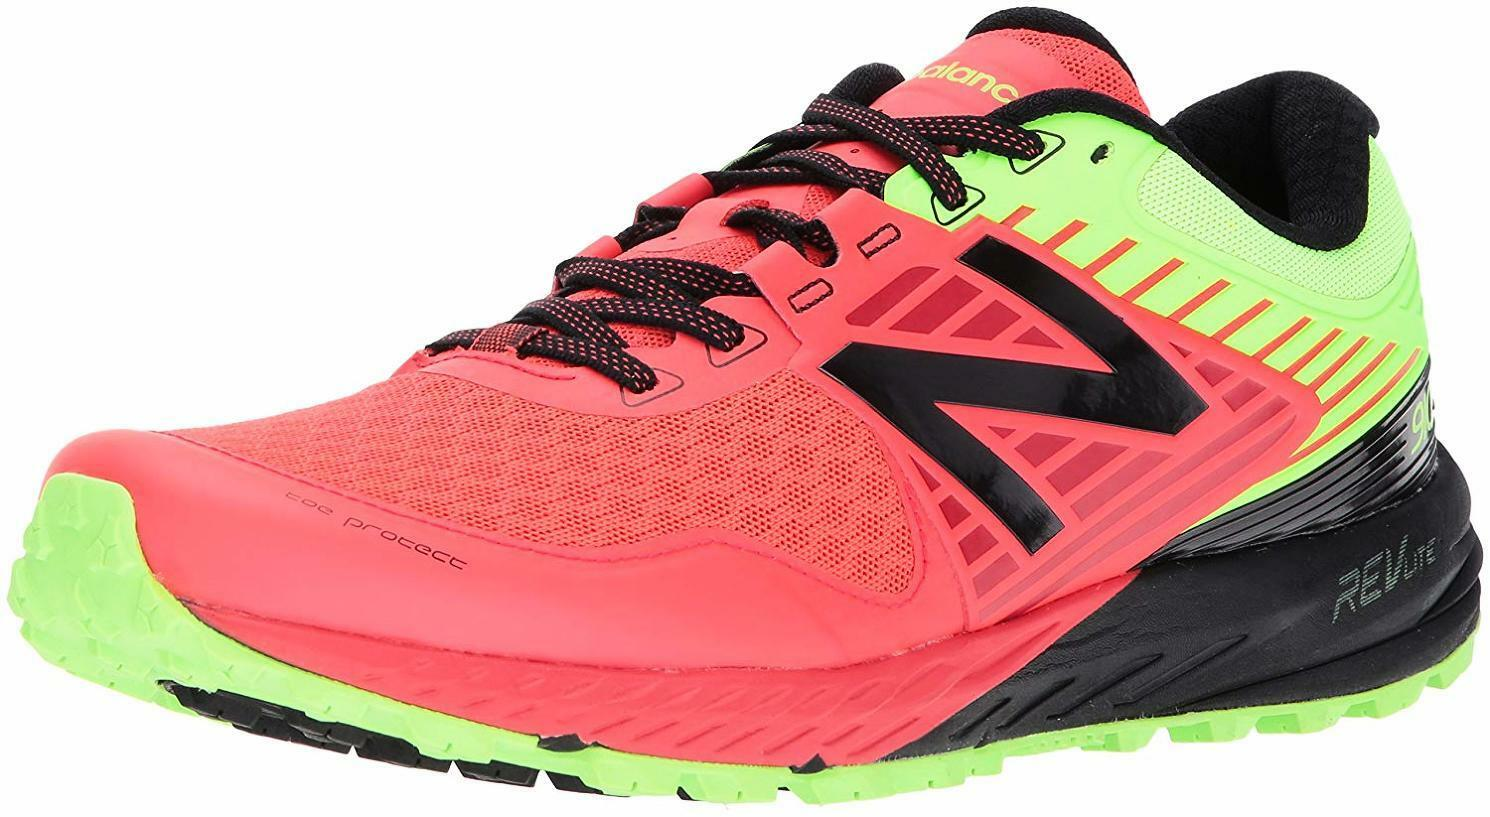 New Balance Men's 910v4 Running shoes - Choose SZ color